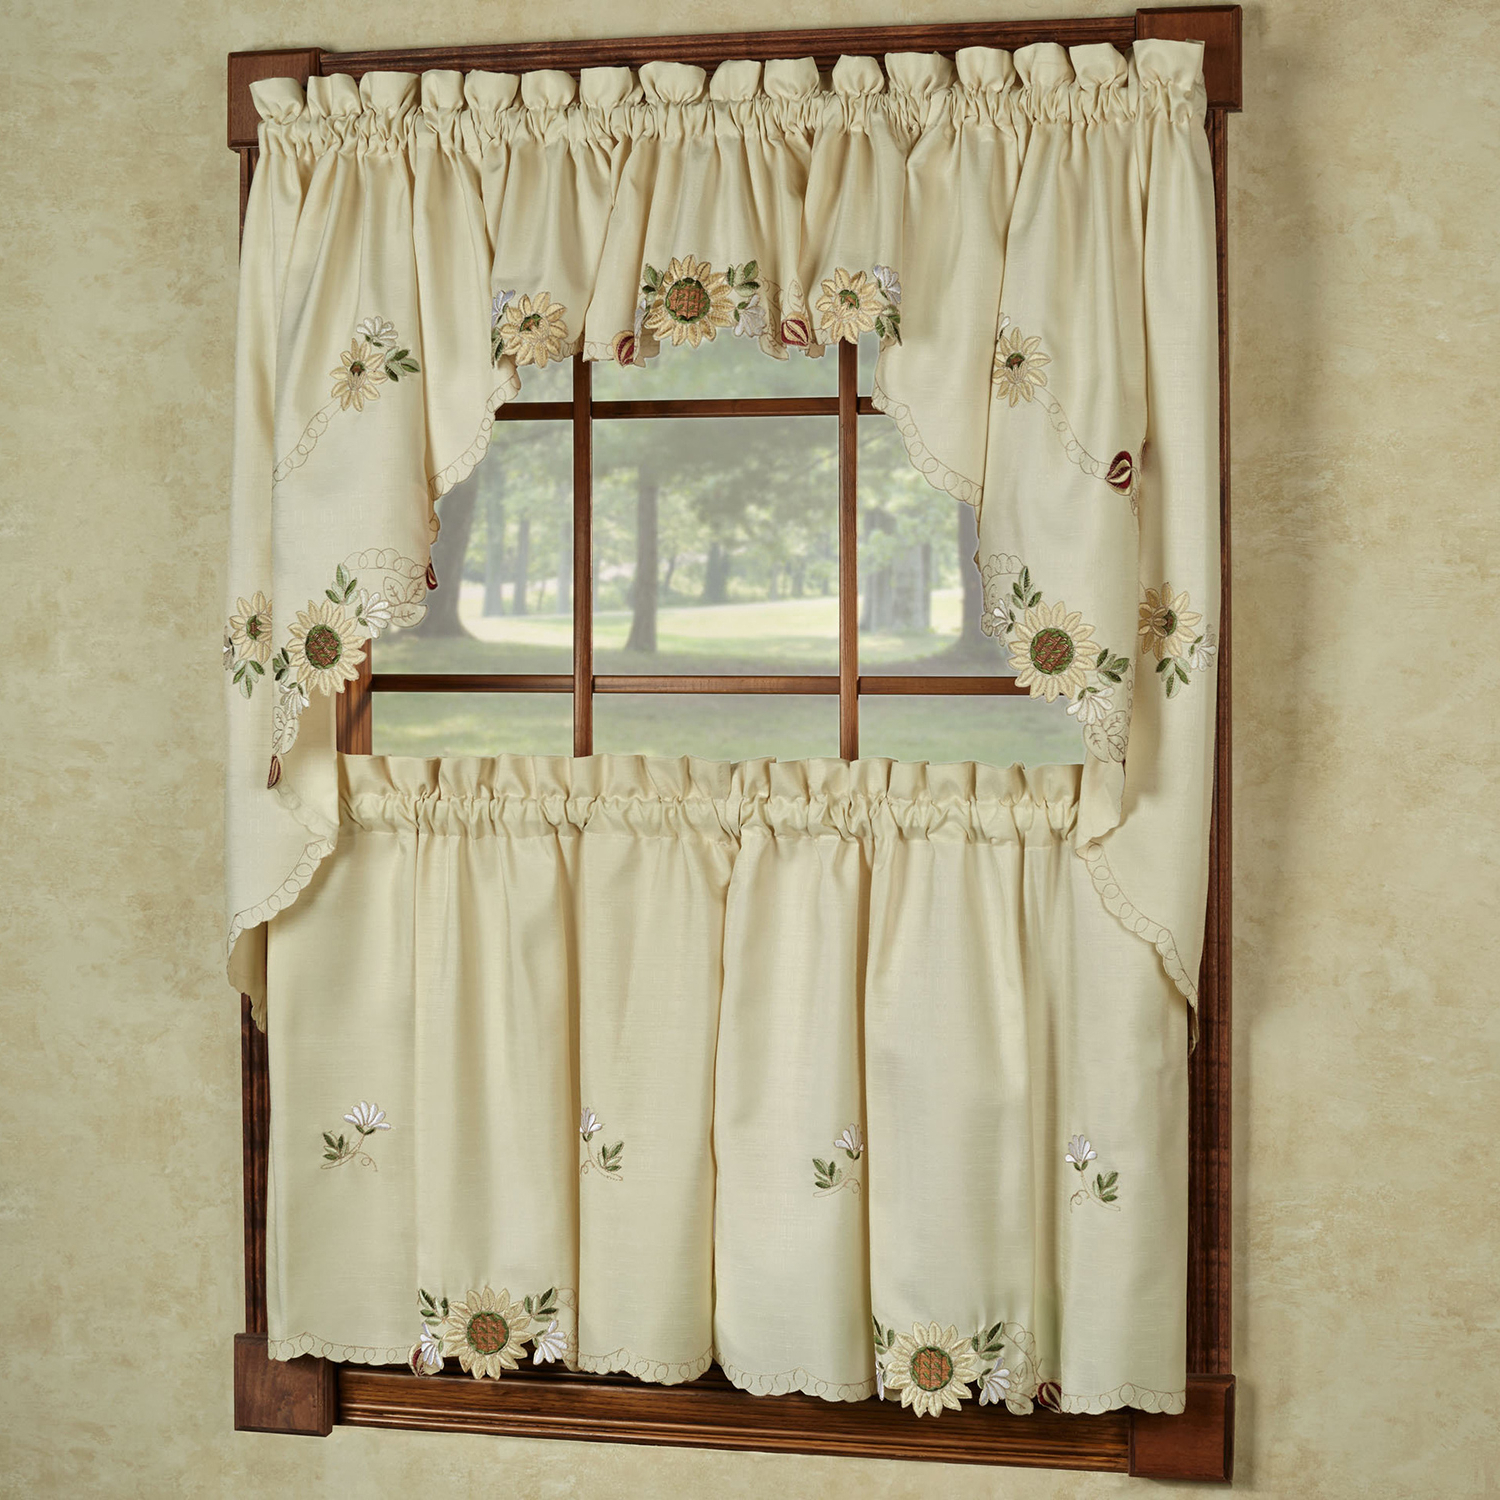 """Latest Details About Sunflower Cream Embroidered Kitchen Curtains 24"""" Tier, Swag & Valance Set Regarding Cotton Blend Ivy Floral Tier Curtain And Swag Sets (View 9 of 20)"""